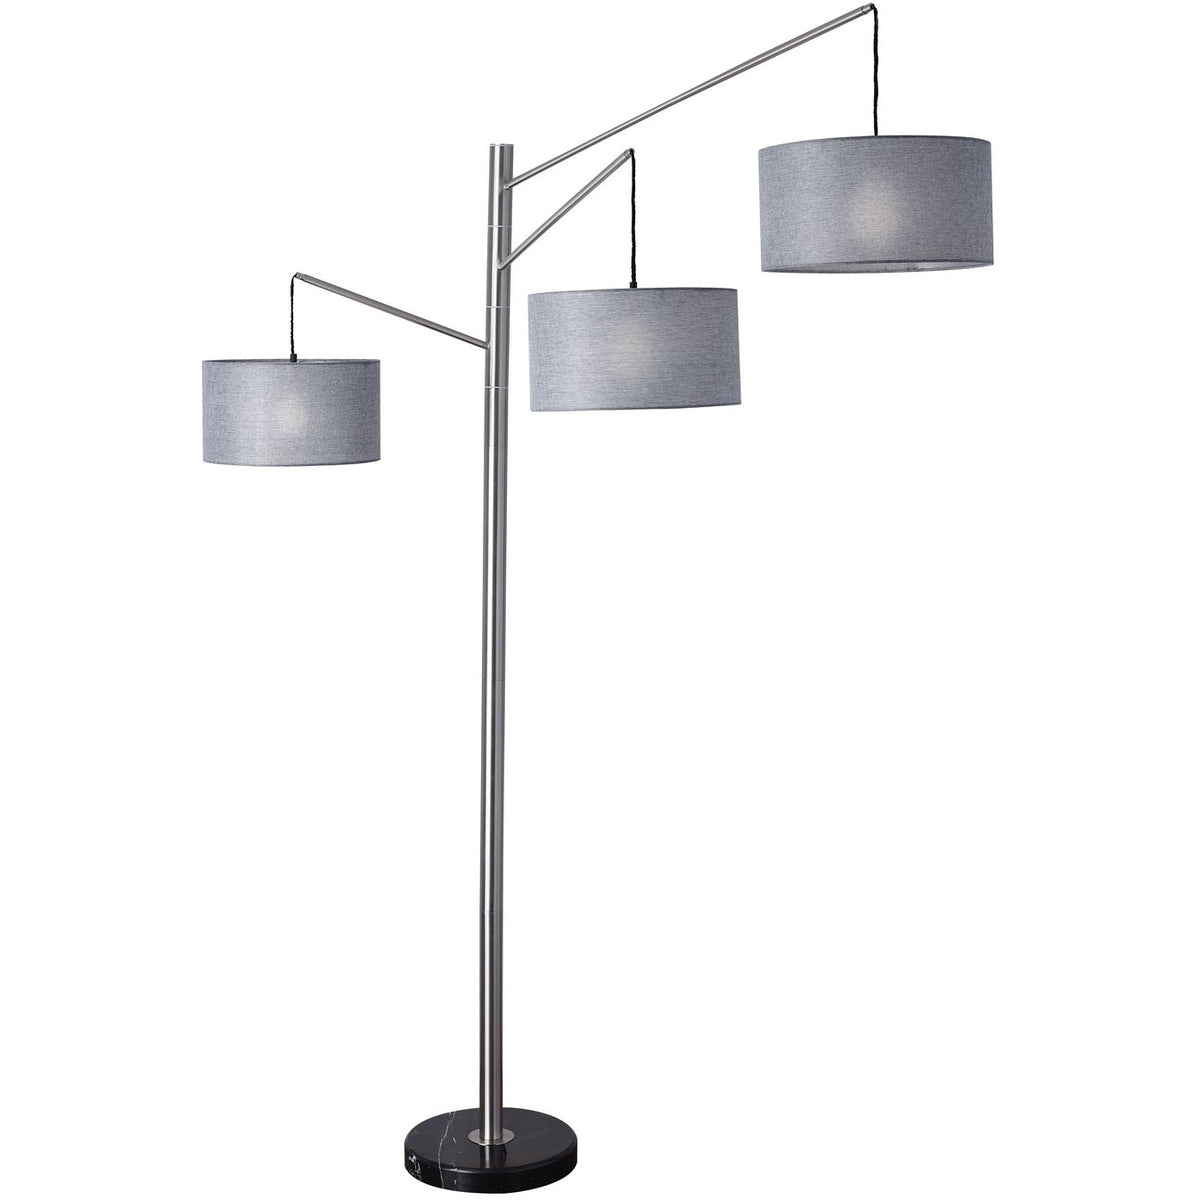 Adesso Home - 4255-22 - Three Light Floor Lamp - Wellington - Brushed Steel